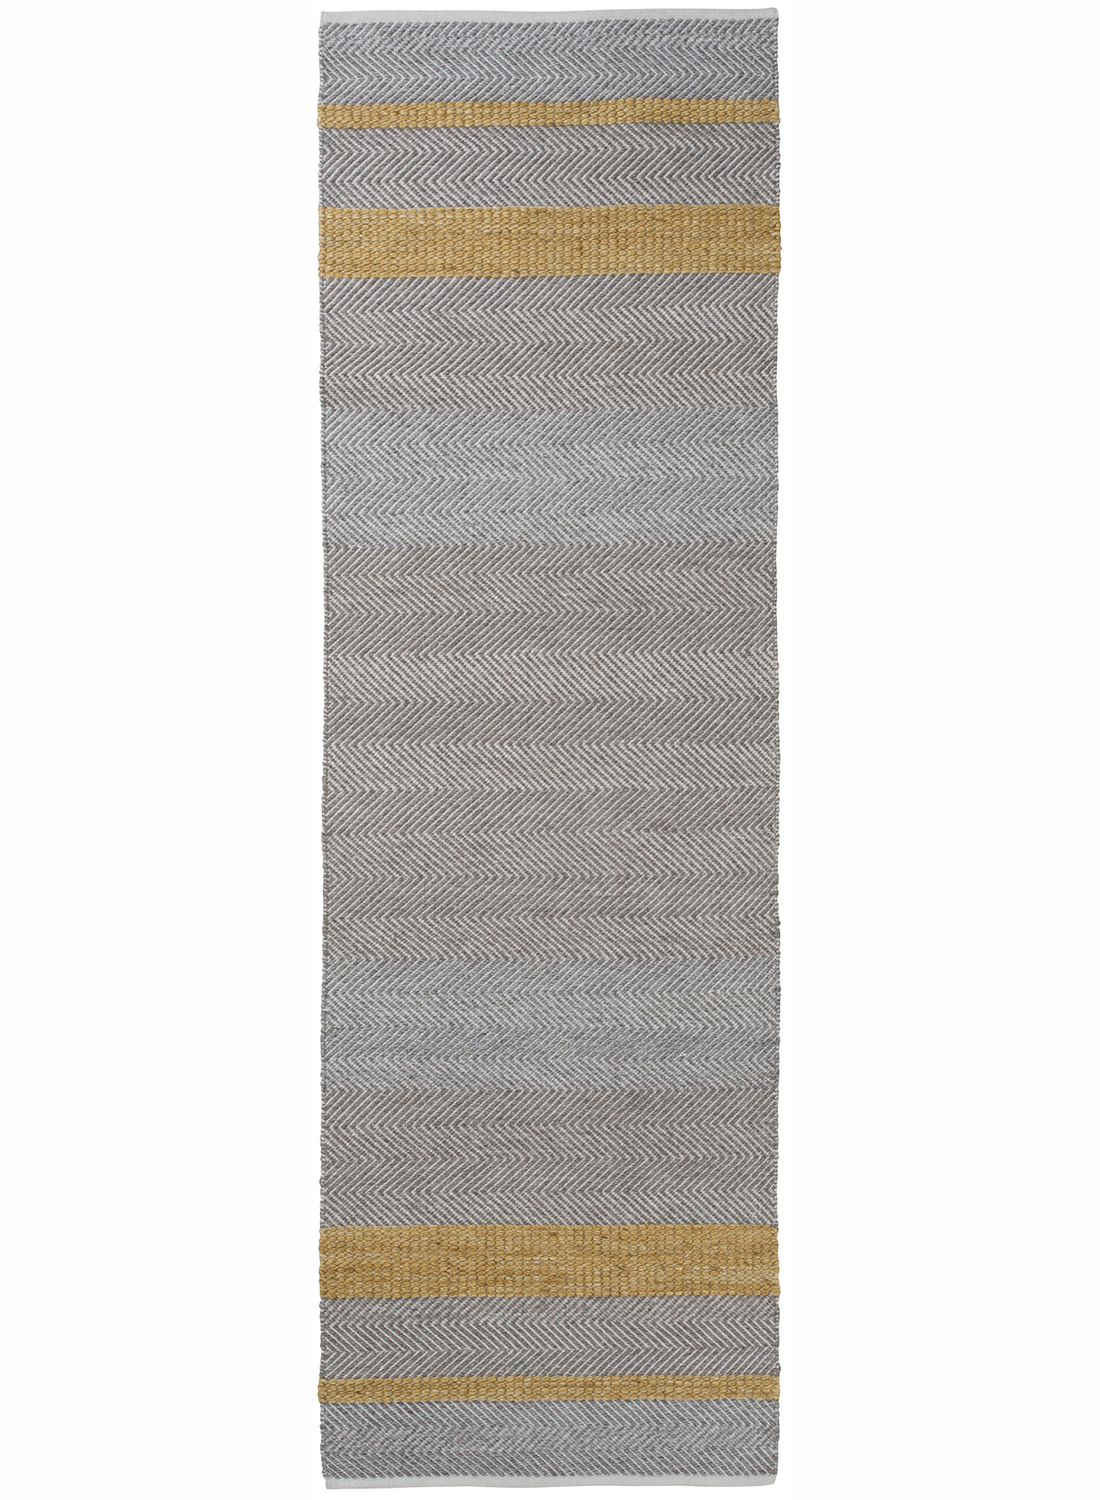 tapis kilim long pour entree norwich tapis moderne par. Black Bedroom Furniture Sets. Home Design Ideas